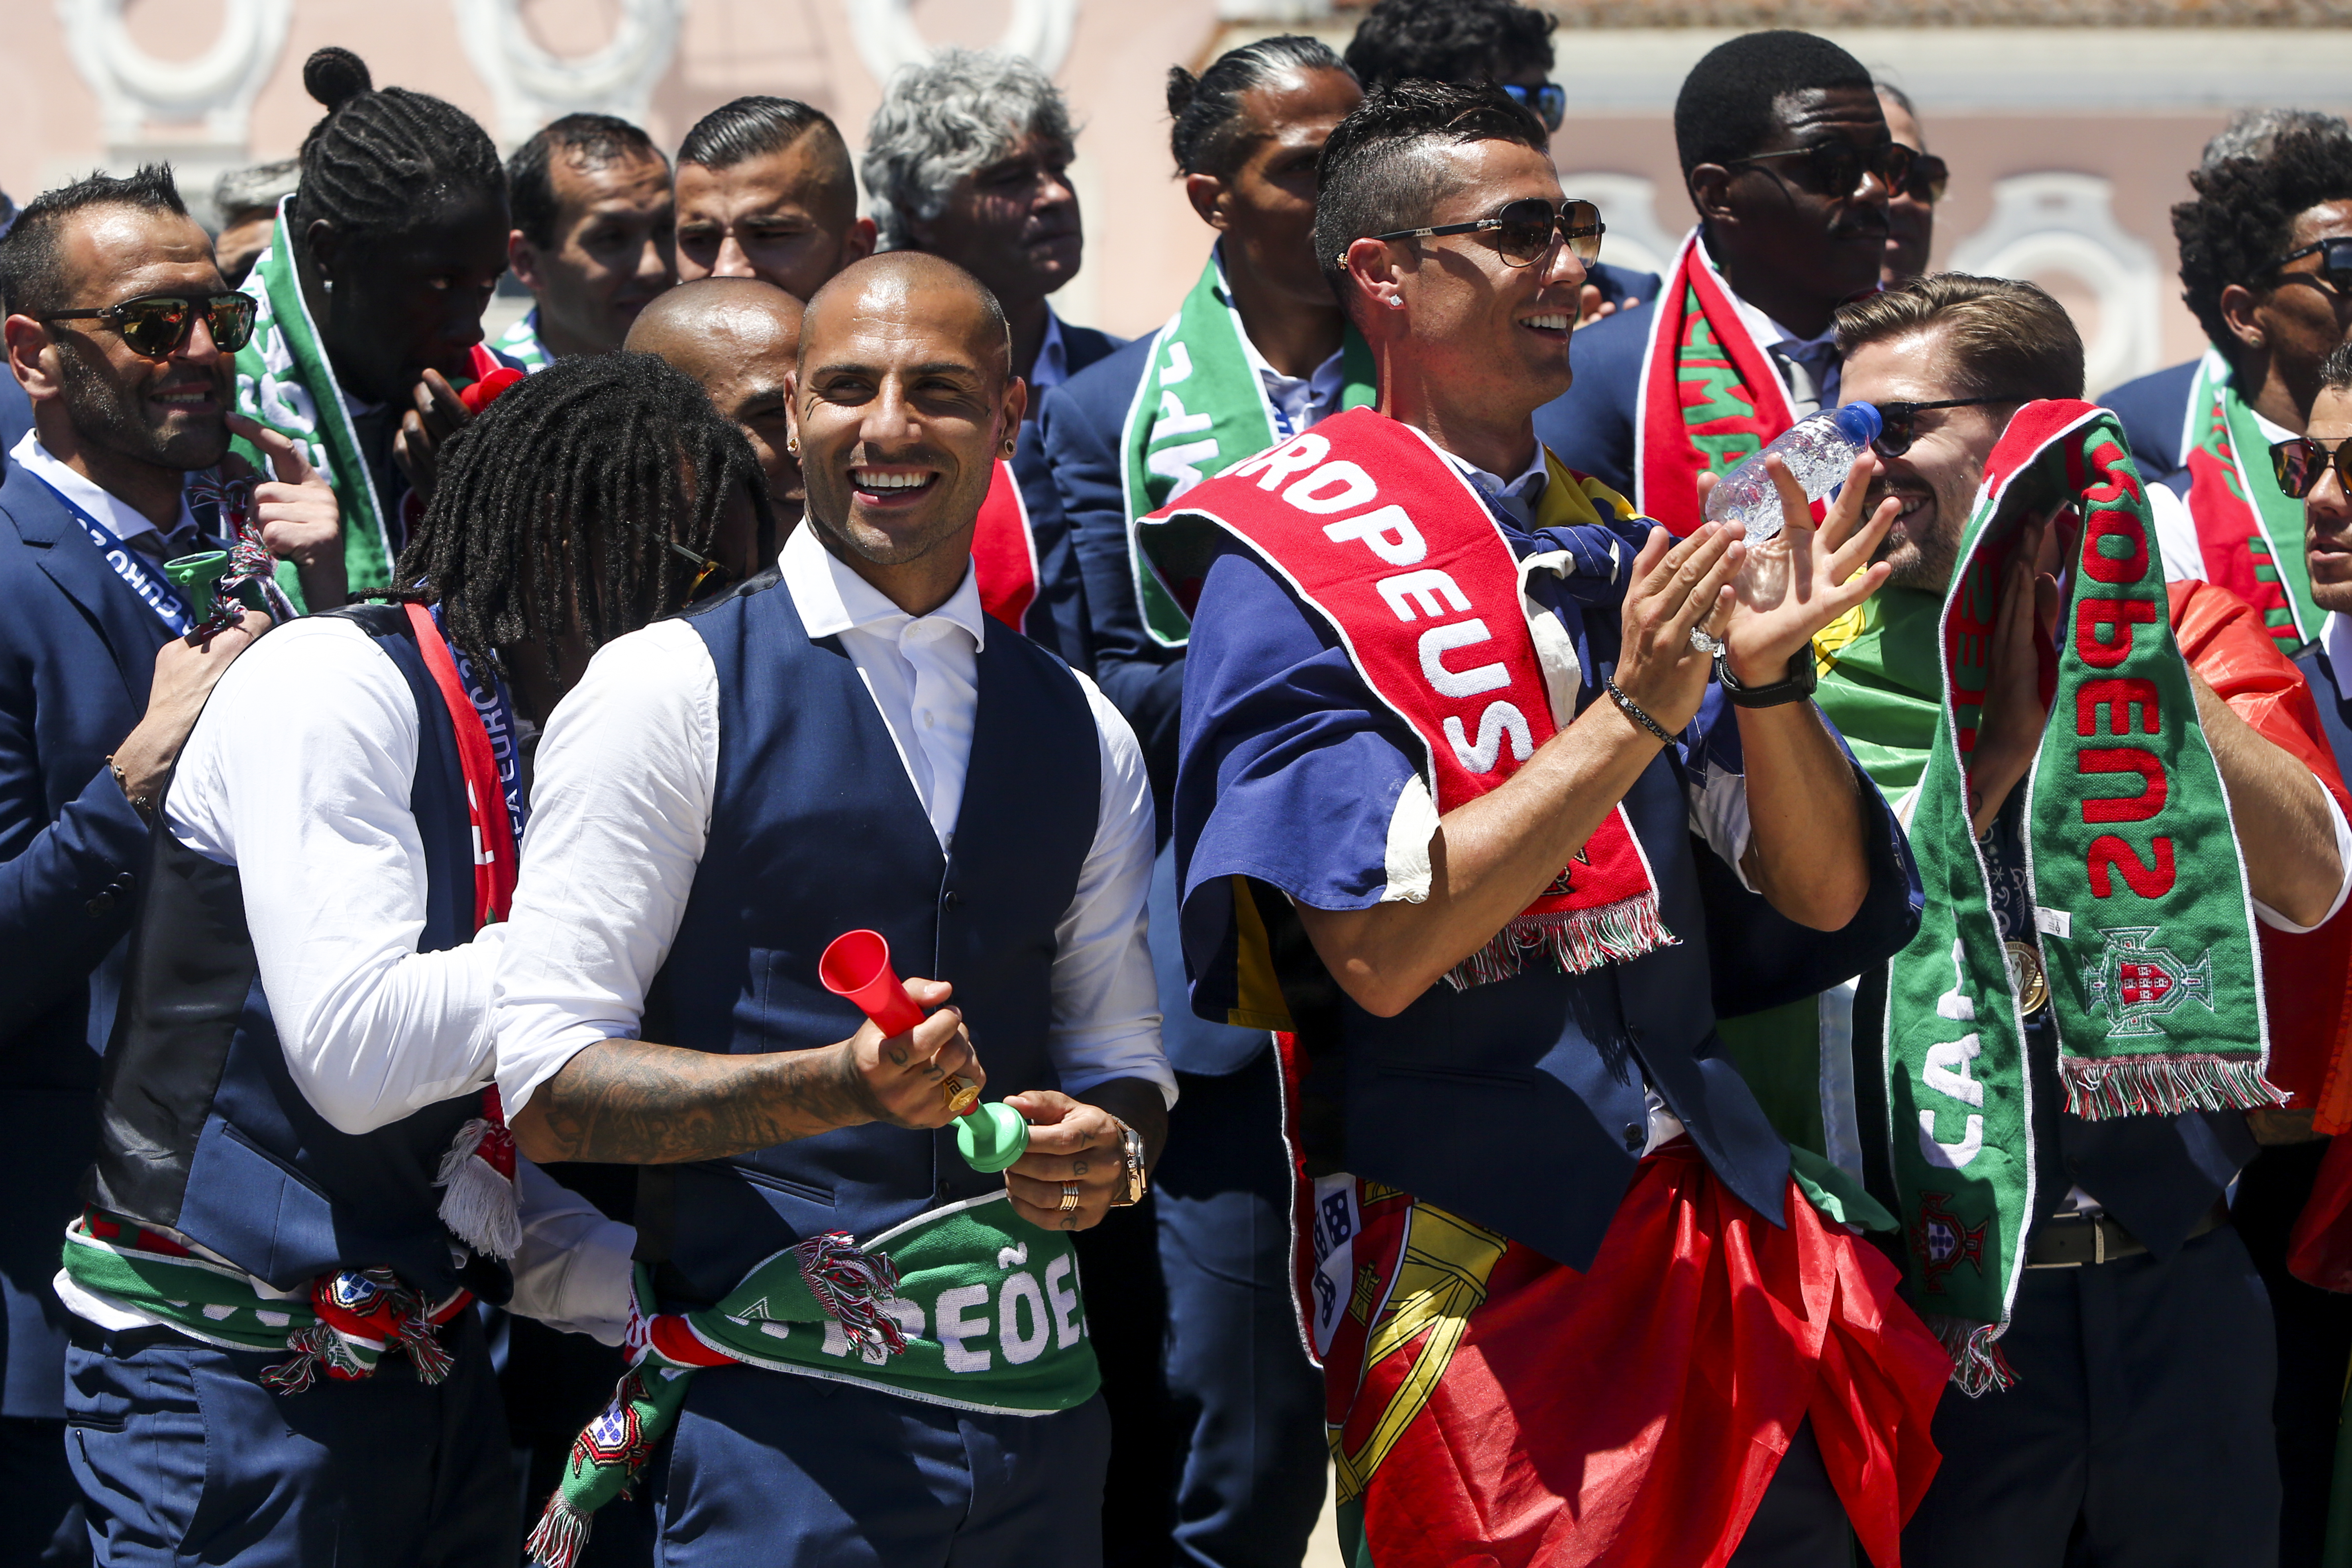 Portugal's forward Cristiano Ronaldo (R) applauds Portugal's President Marcelo Rebelo de Sousa (unseen) past Portugal's forward Ricardo Quaresma (L) as they celebrate their victory at Belem Palace on July 11, 2016 after their Euro 2016 final football win over France yesterday. The Portuguese football team led by Cristiano Ronaldo returned home to a heroes' welcome today after their upset 1-0 win triumph over France in the Euro 2016 final.  / AFP PHOTO / NUNO FOX